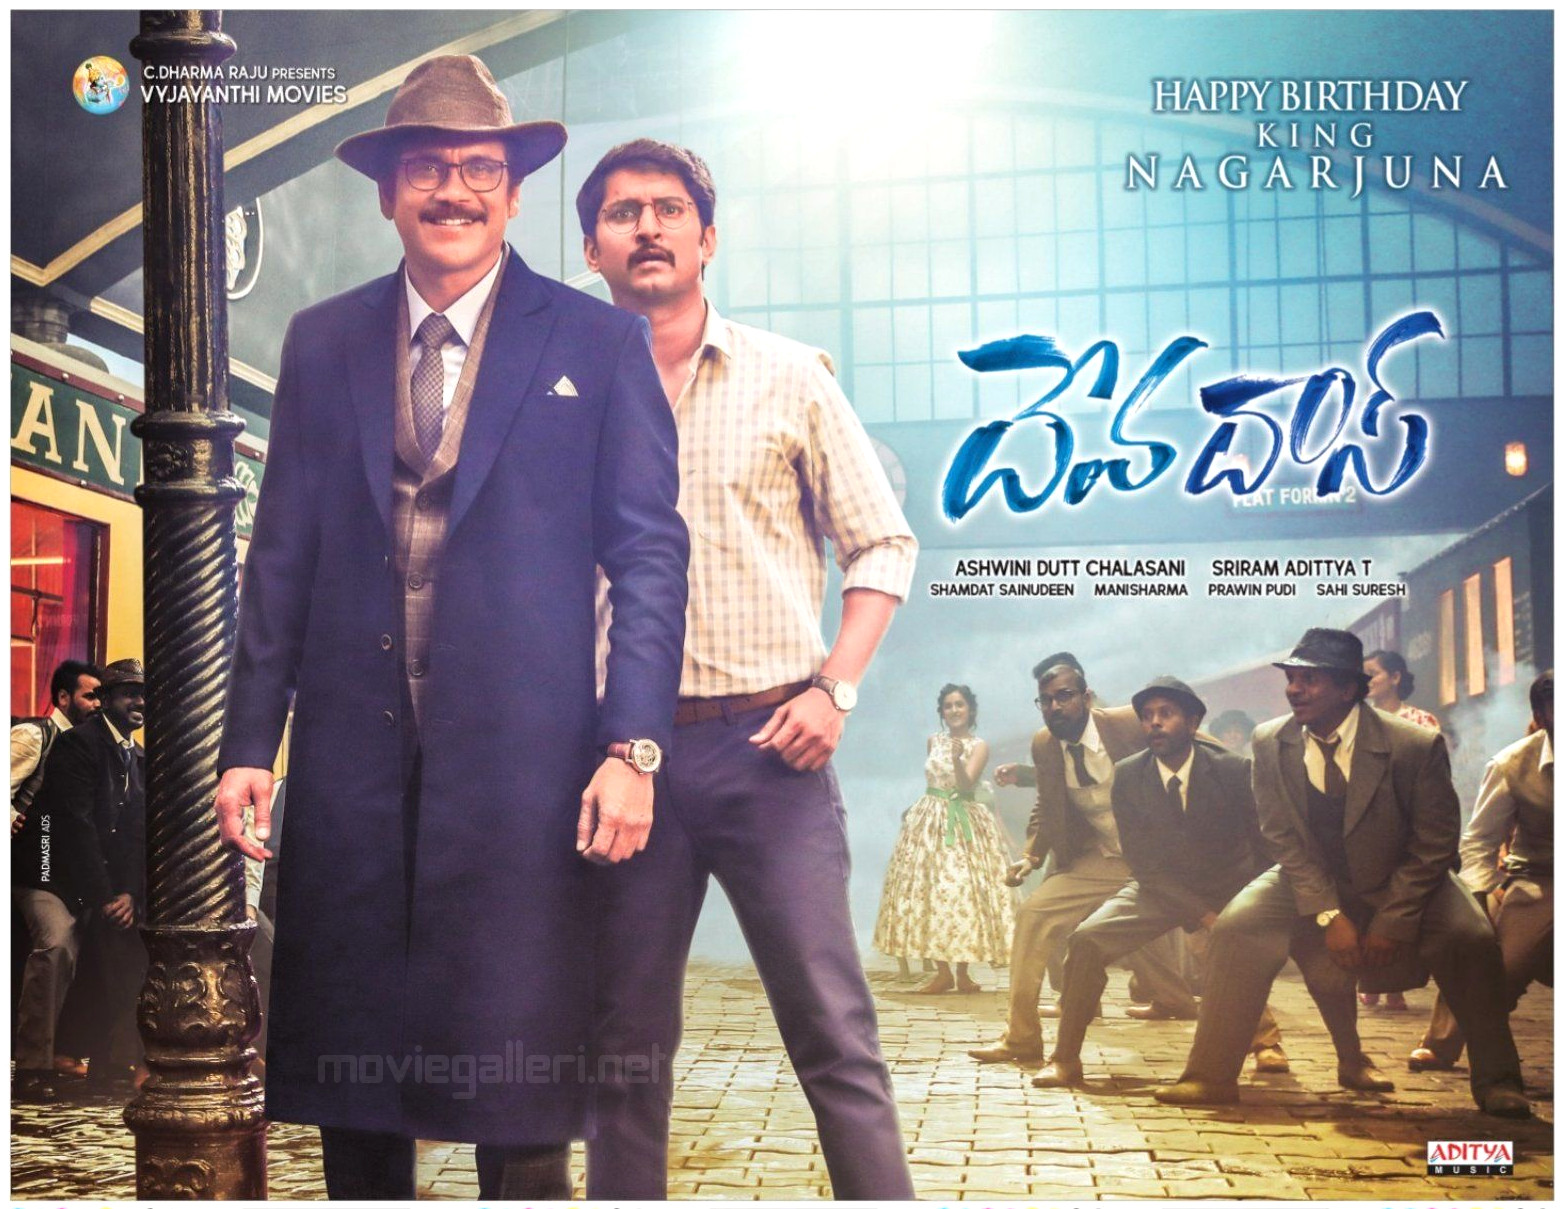 Devadas Team Wishes Nagarjuna Birthday Posters